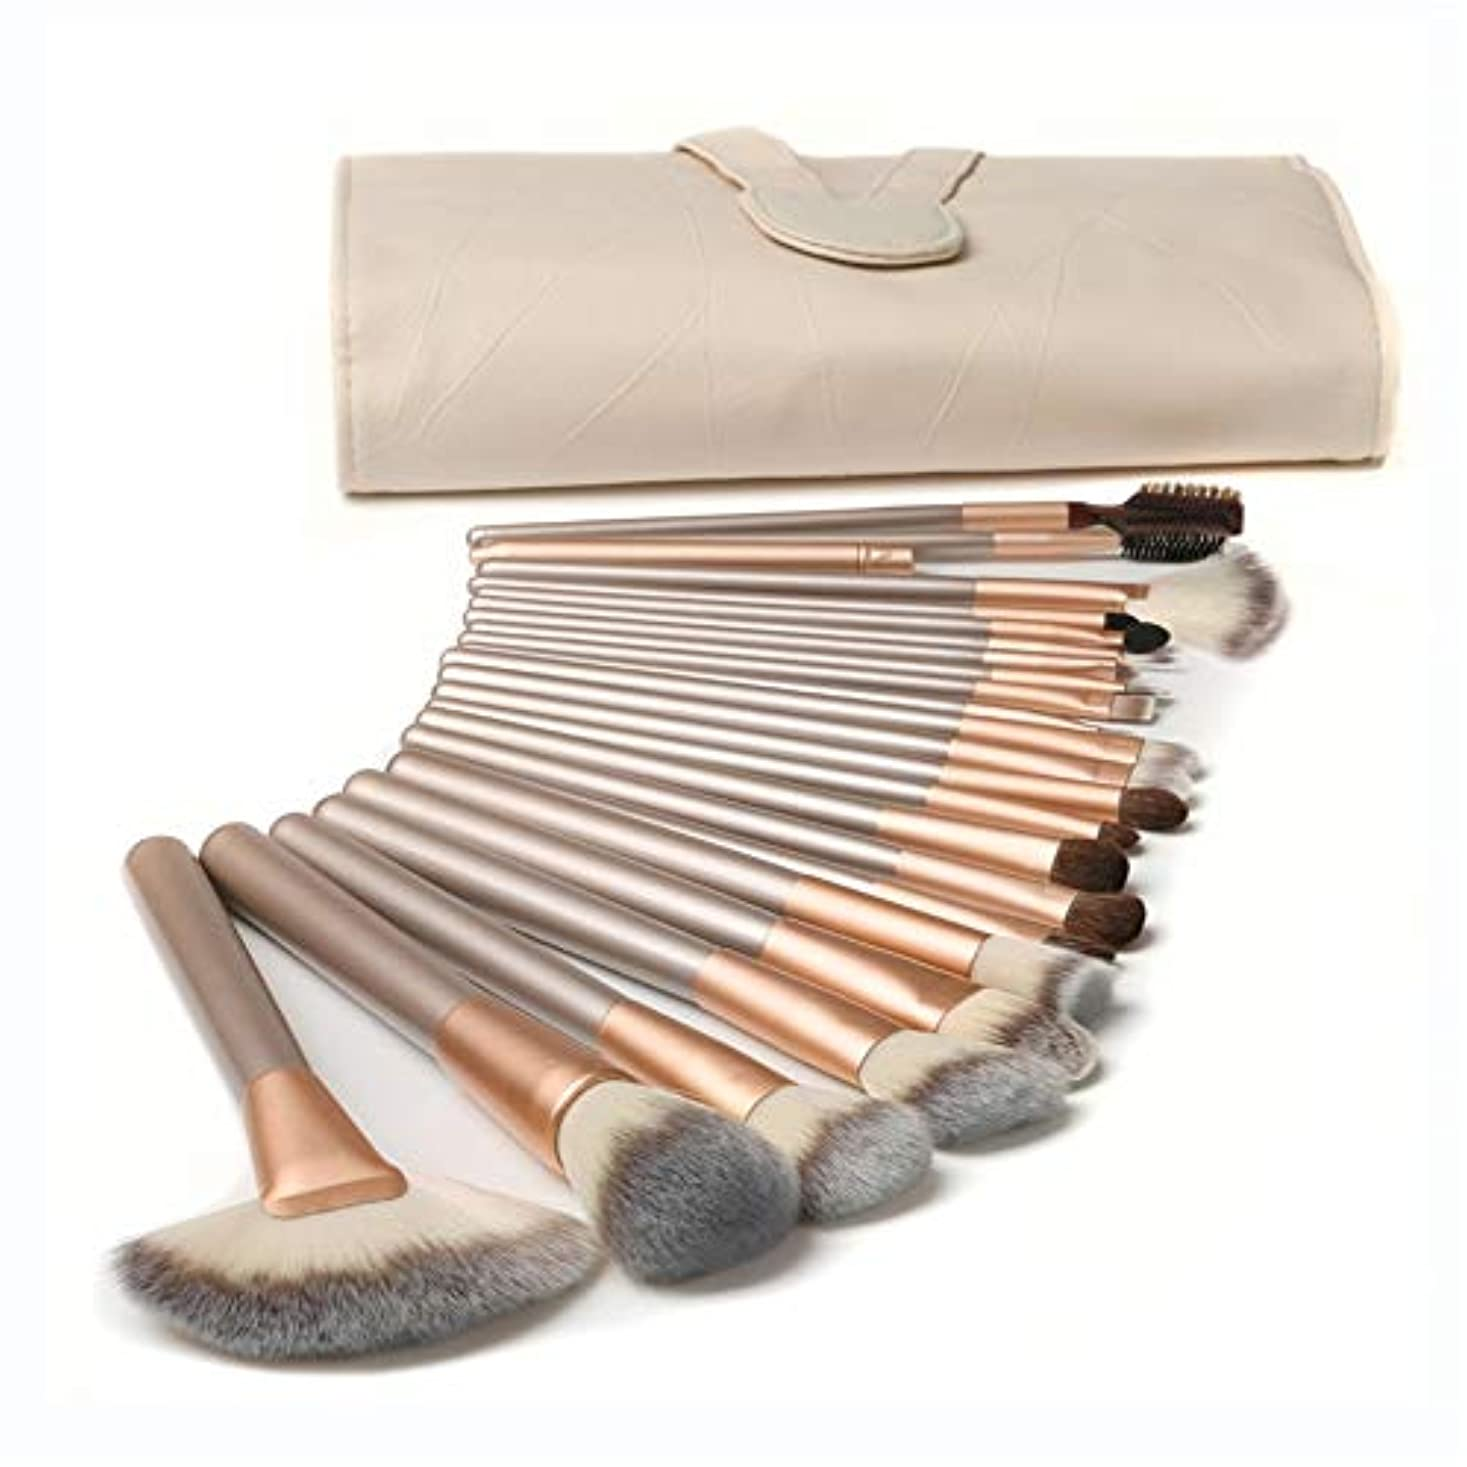 Makeup brushes ナイロンヘア、PUレザーエクリュメイクアップブラシセットポーチ、24Pcsプロメイクアップブラシプラント suits (Color : Beige)